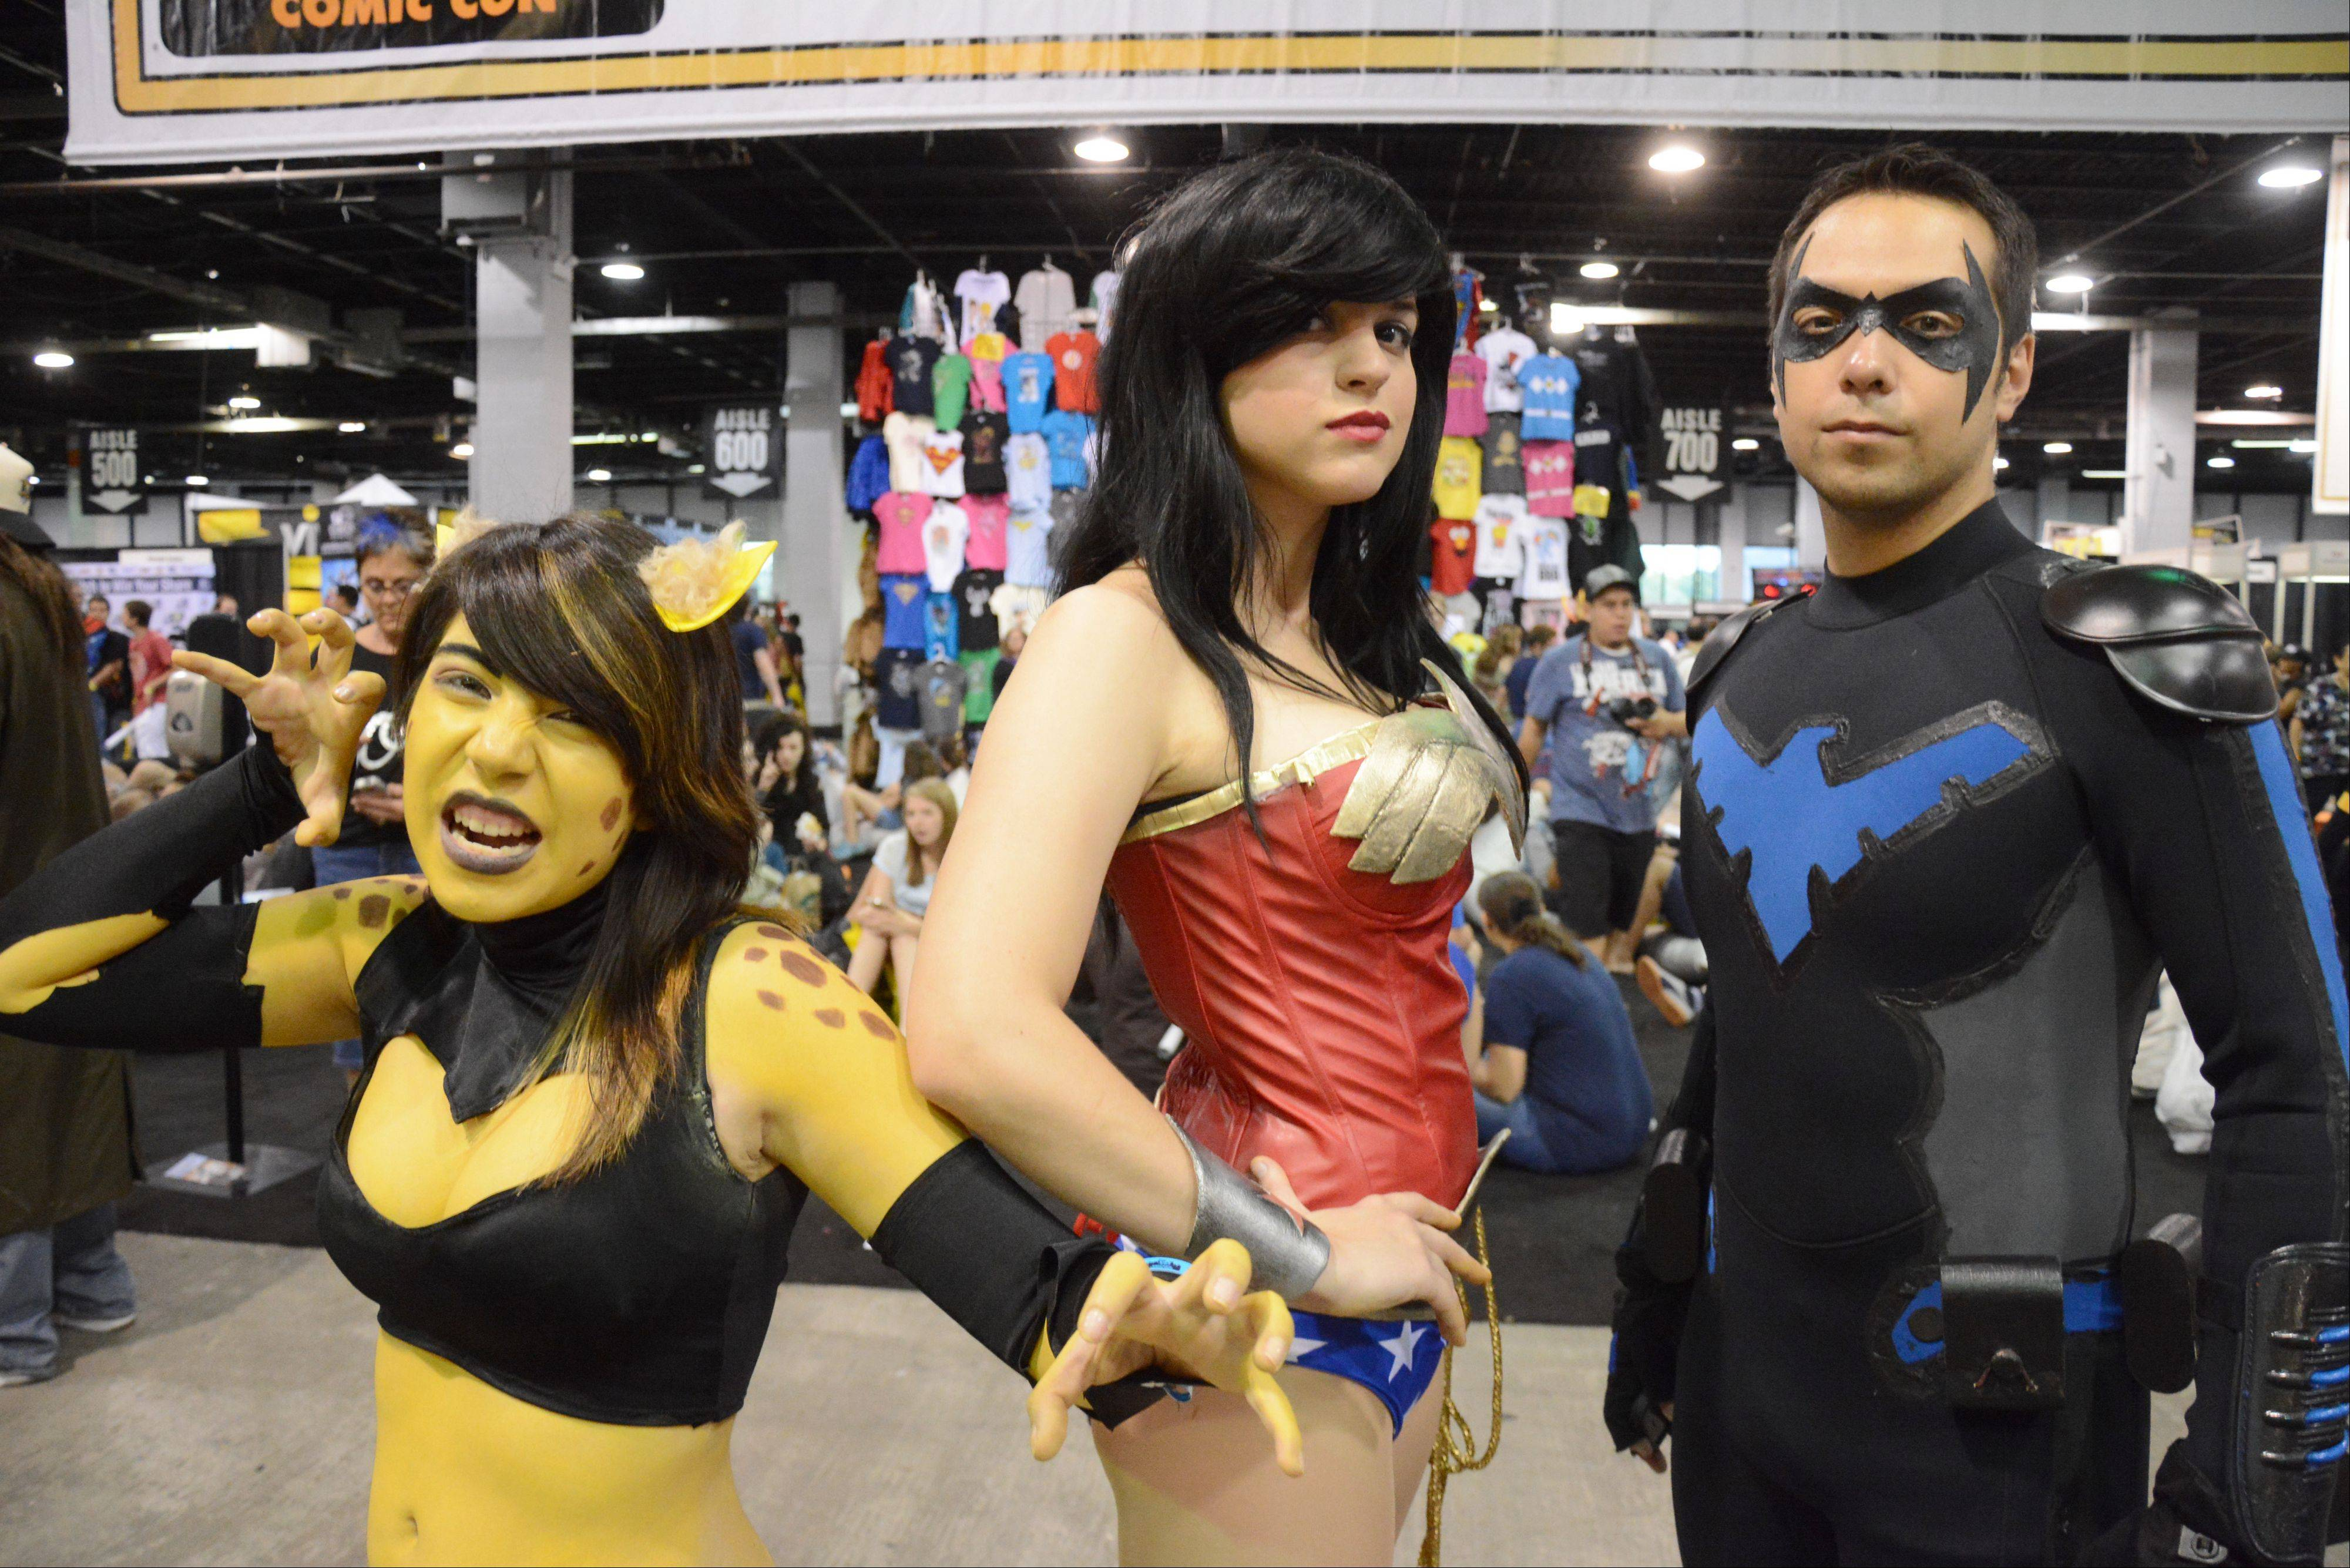 From left, Alexandra Vasquez, Bevan Sukowaty, and Dante Drake, all of Chicago, dressed up as various comic book characters.